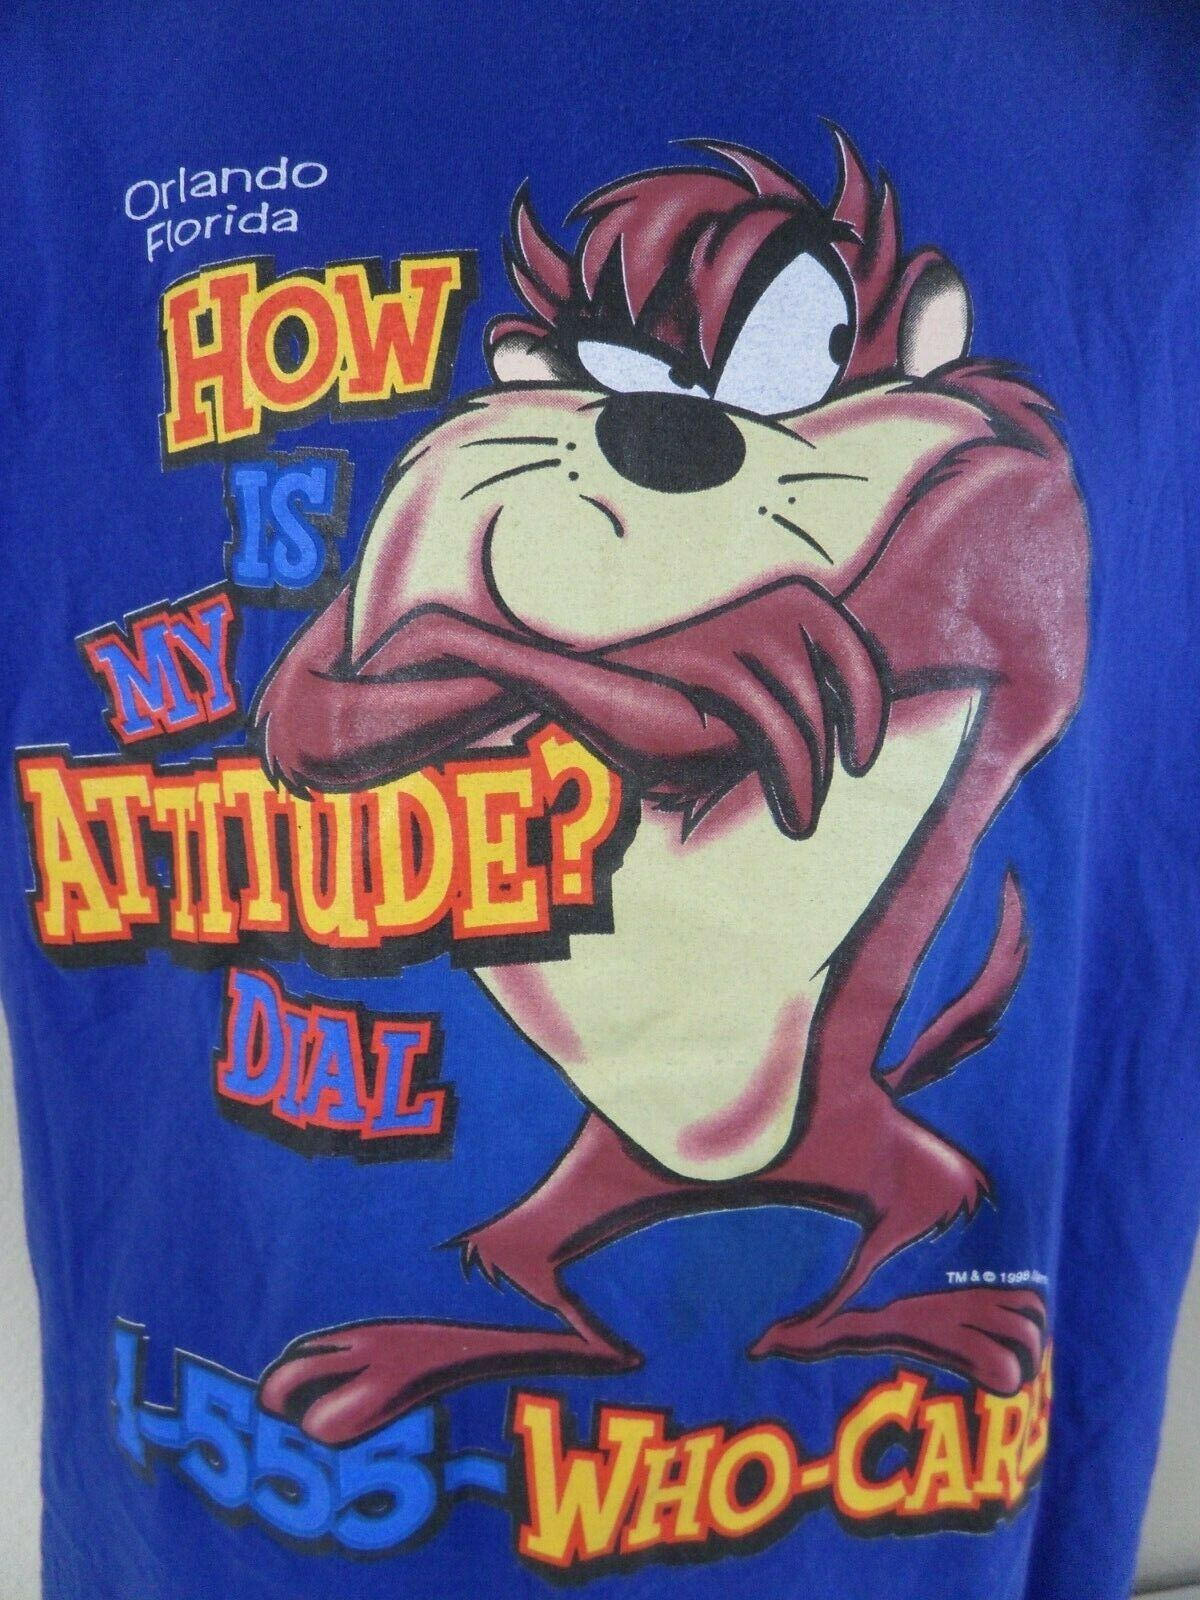 Taz Devil Orlando How Is My Attitude Dial Who Cares Large T Shirt Vintage 1998